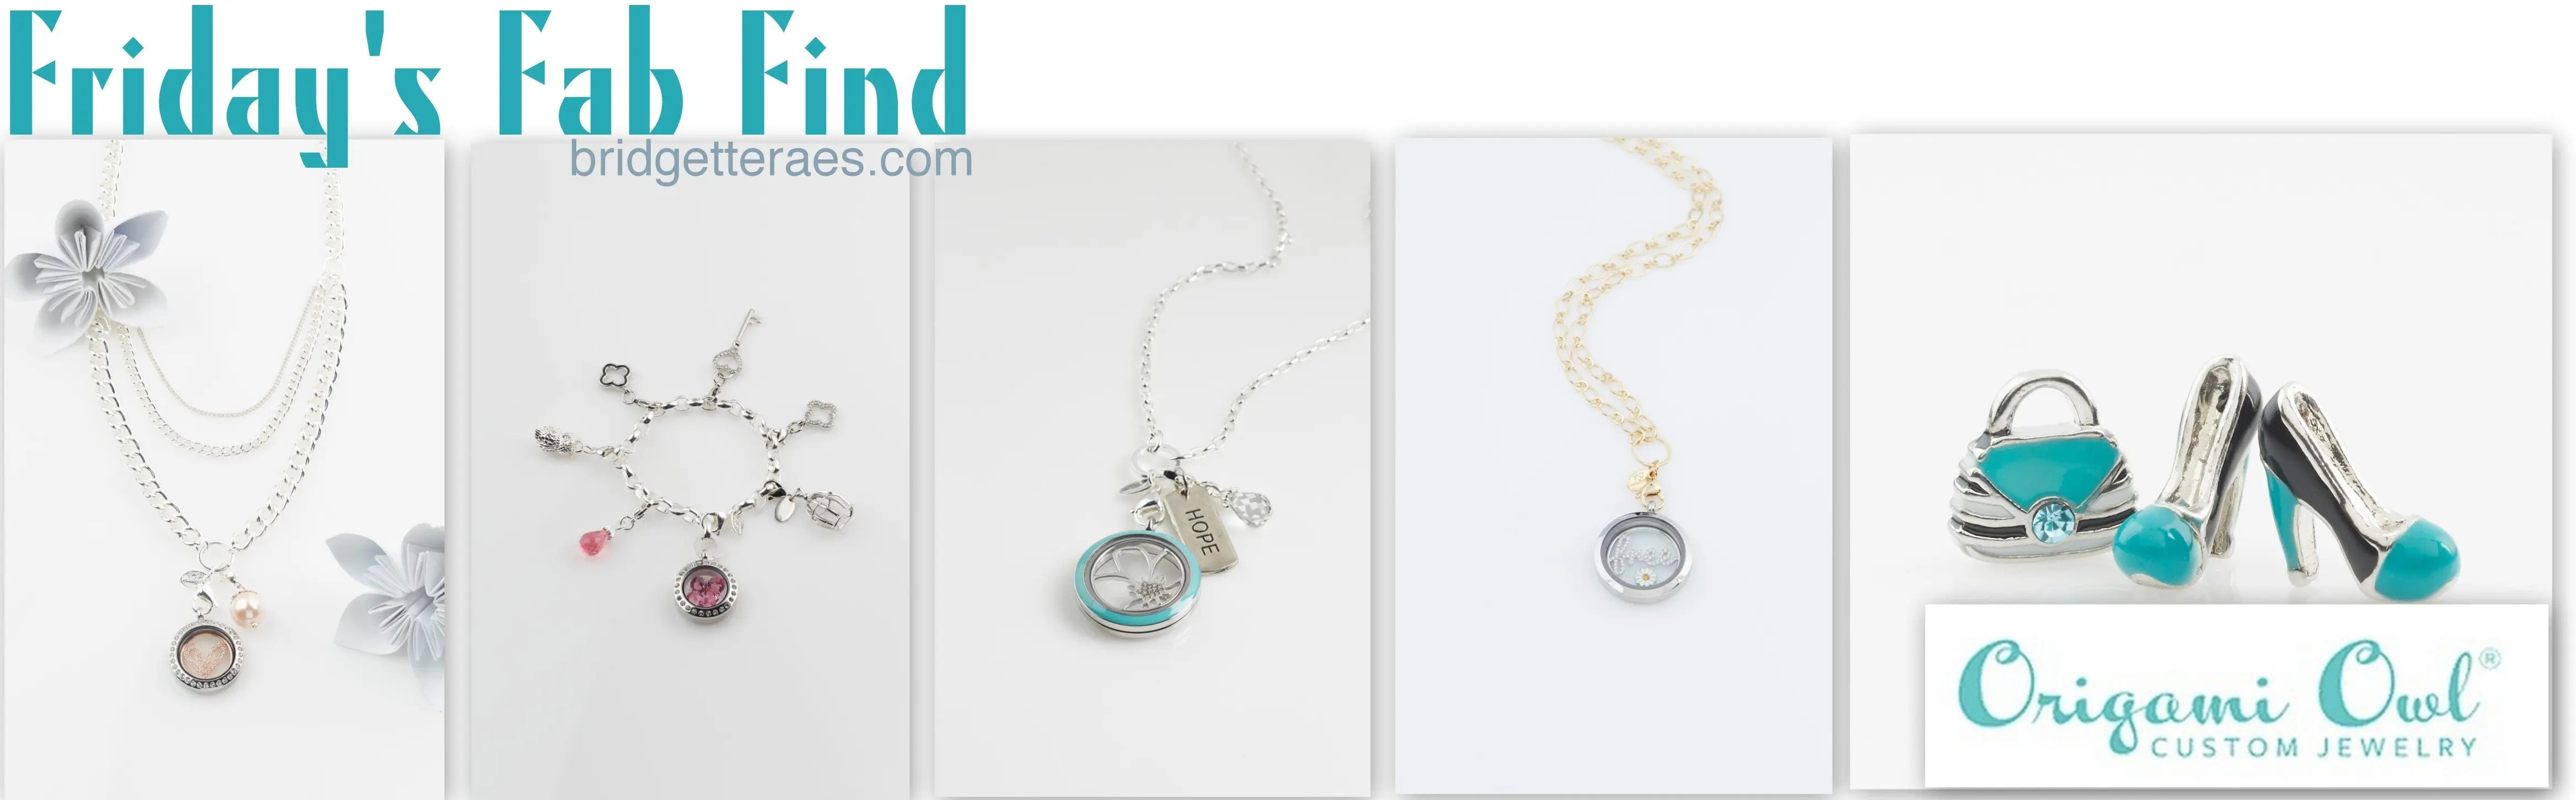 Fridays fab find origami owl origami owl i love the idea of charm bracelets but i dont own any i dont like wearing anything on my wrists in interferes with my typing certainly not jeuxipadfo Image collections